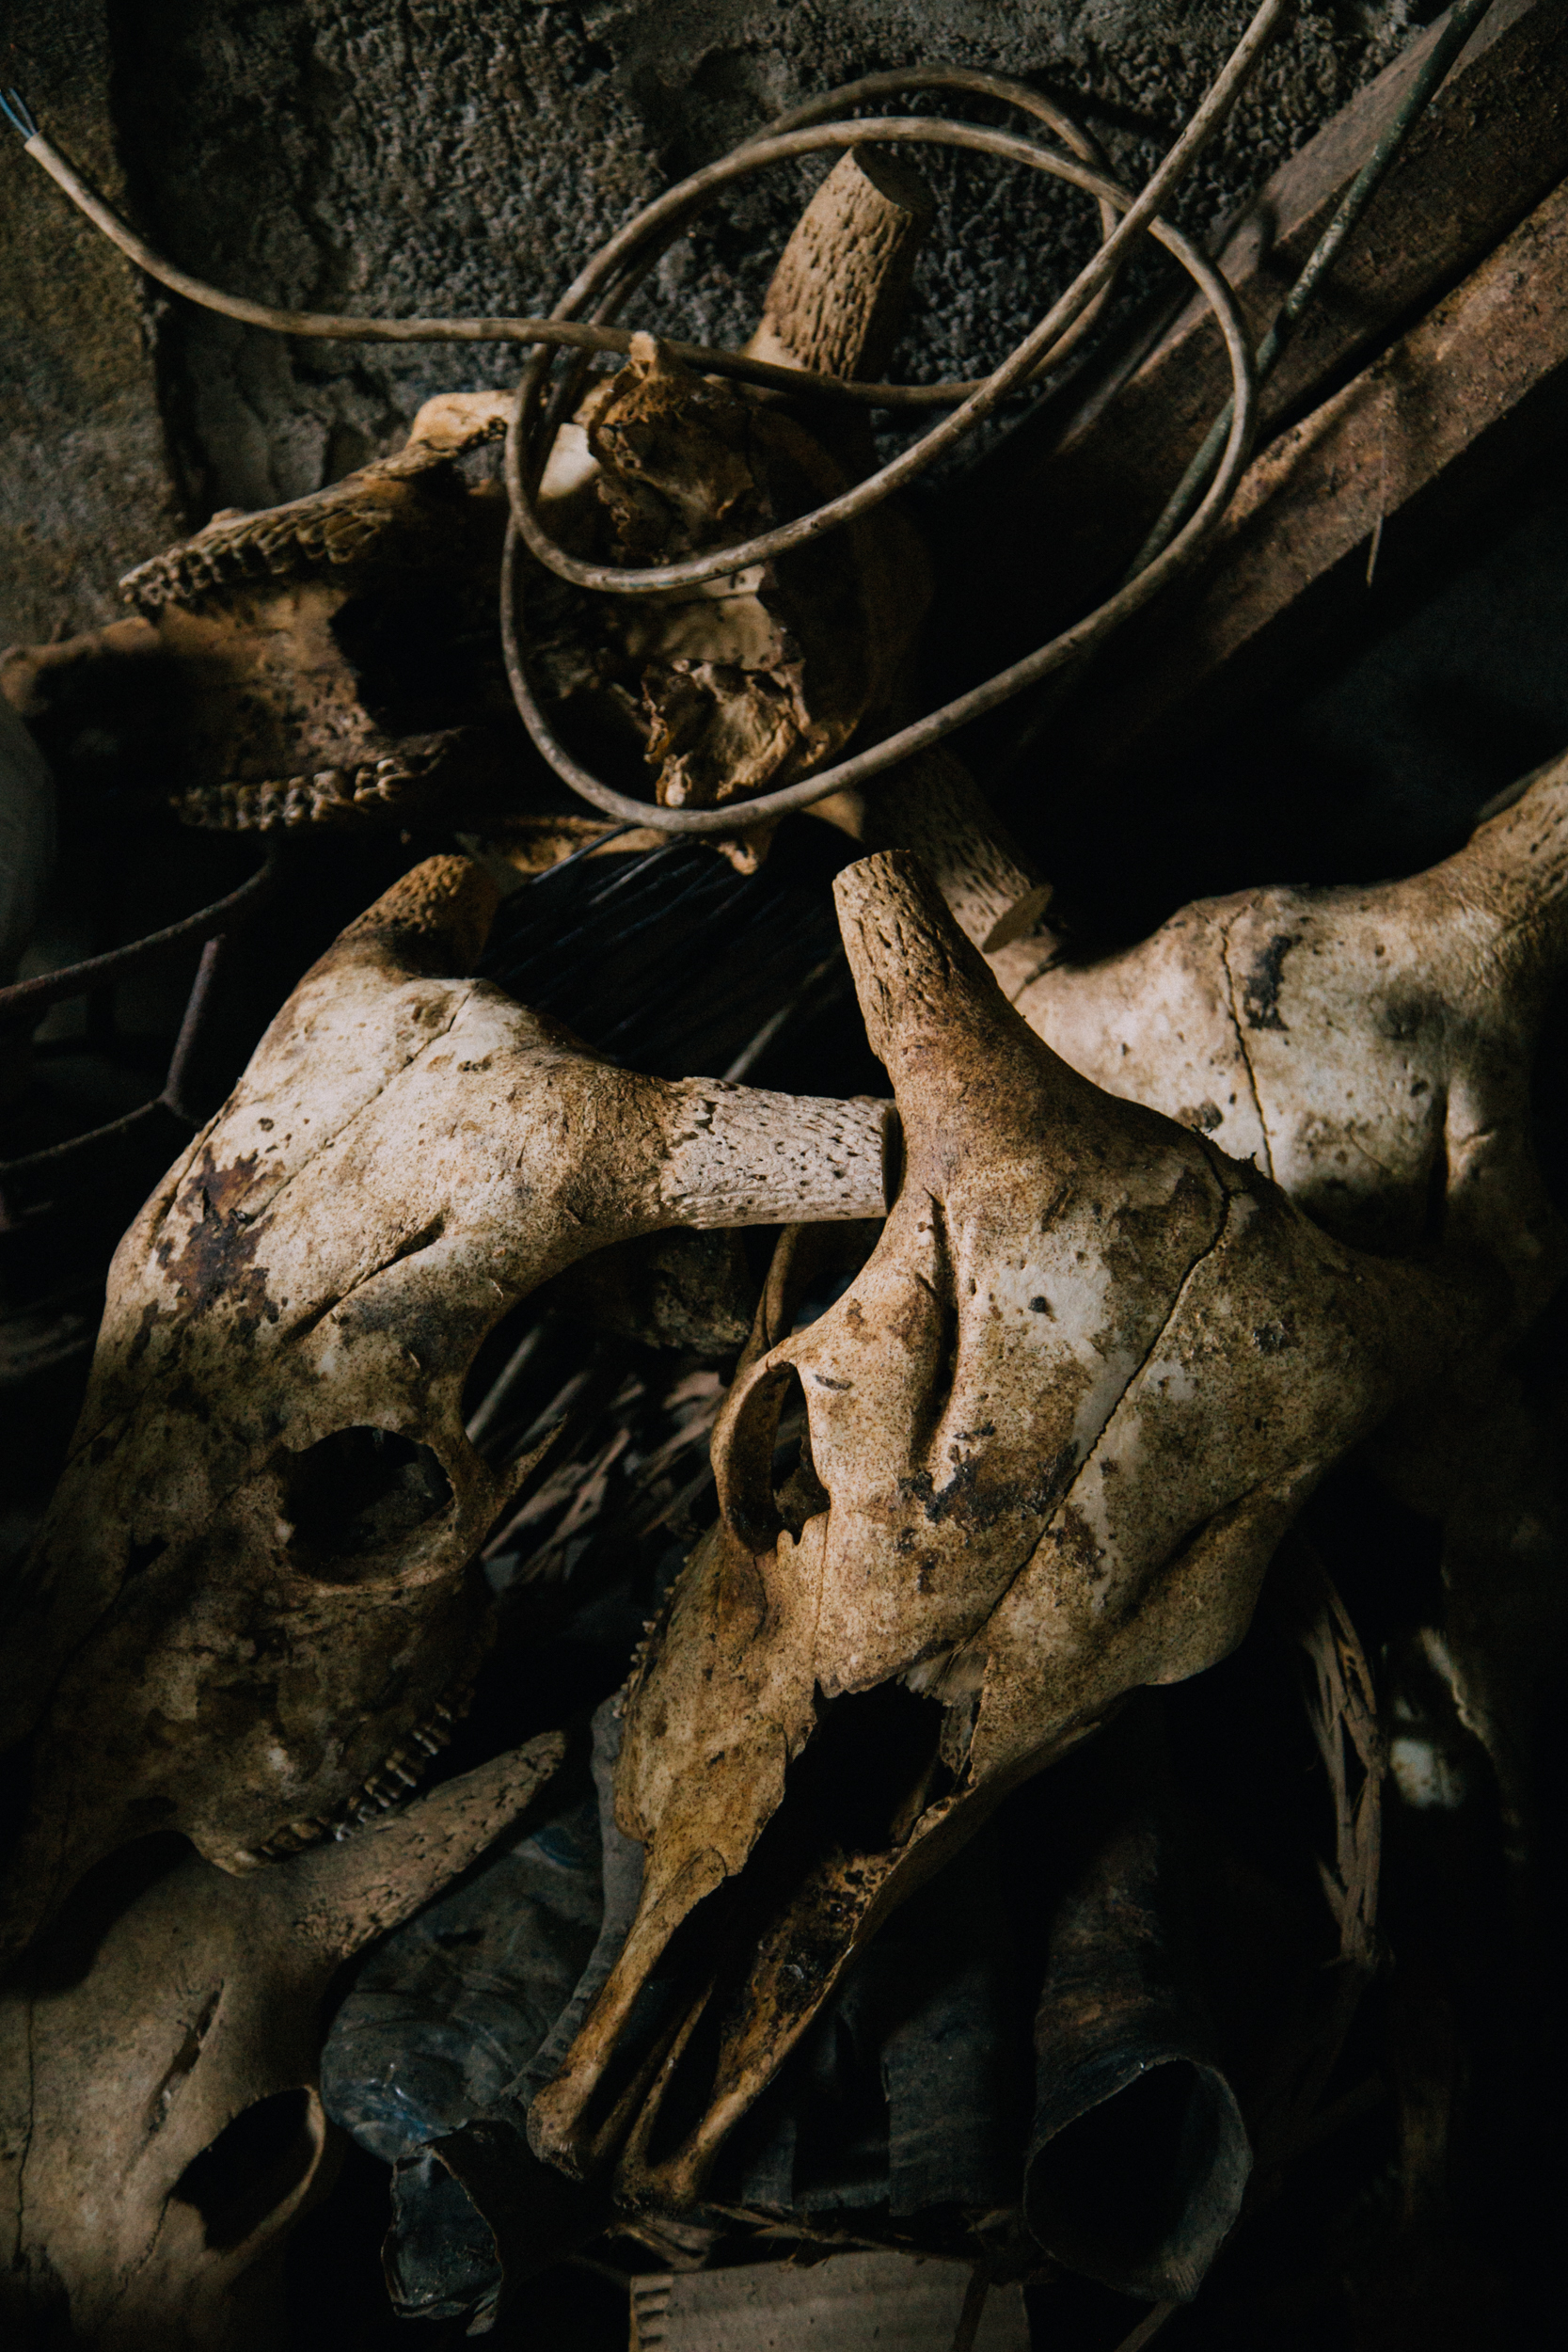 Cattle skulls prepared and stored for carving.